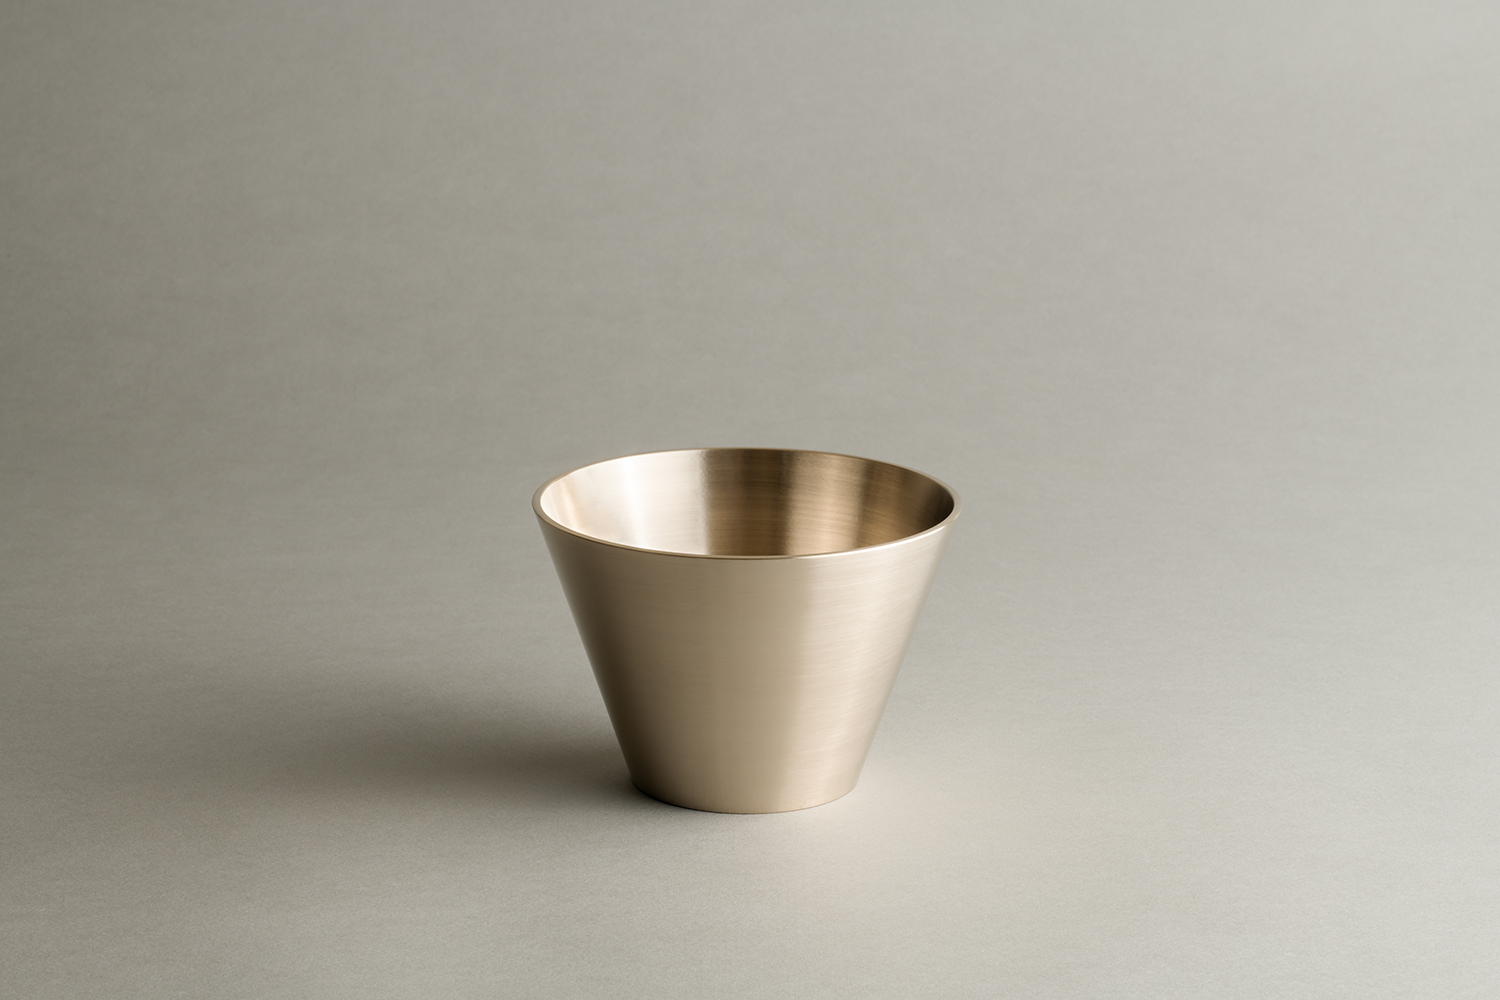 Newmoon small bowl plain